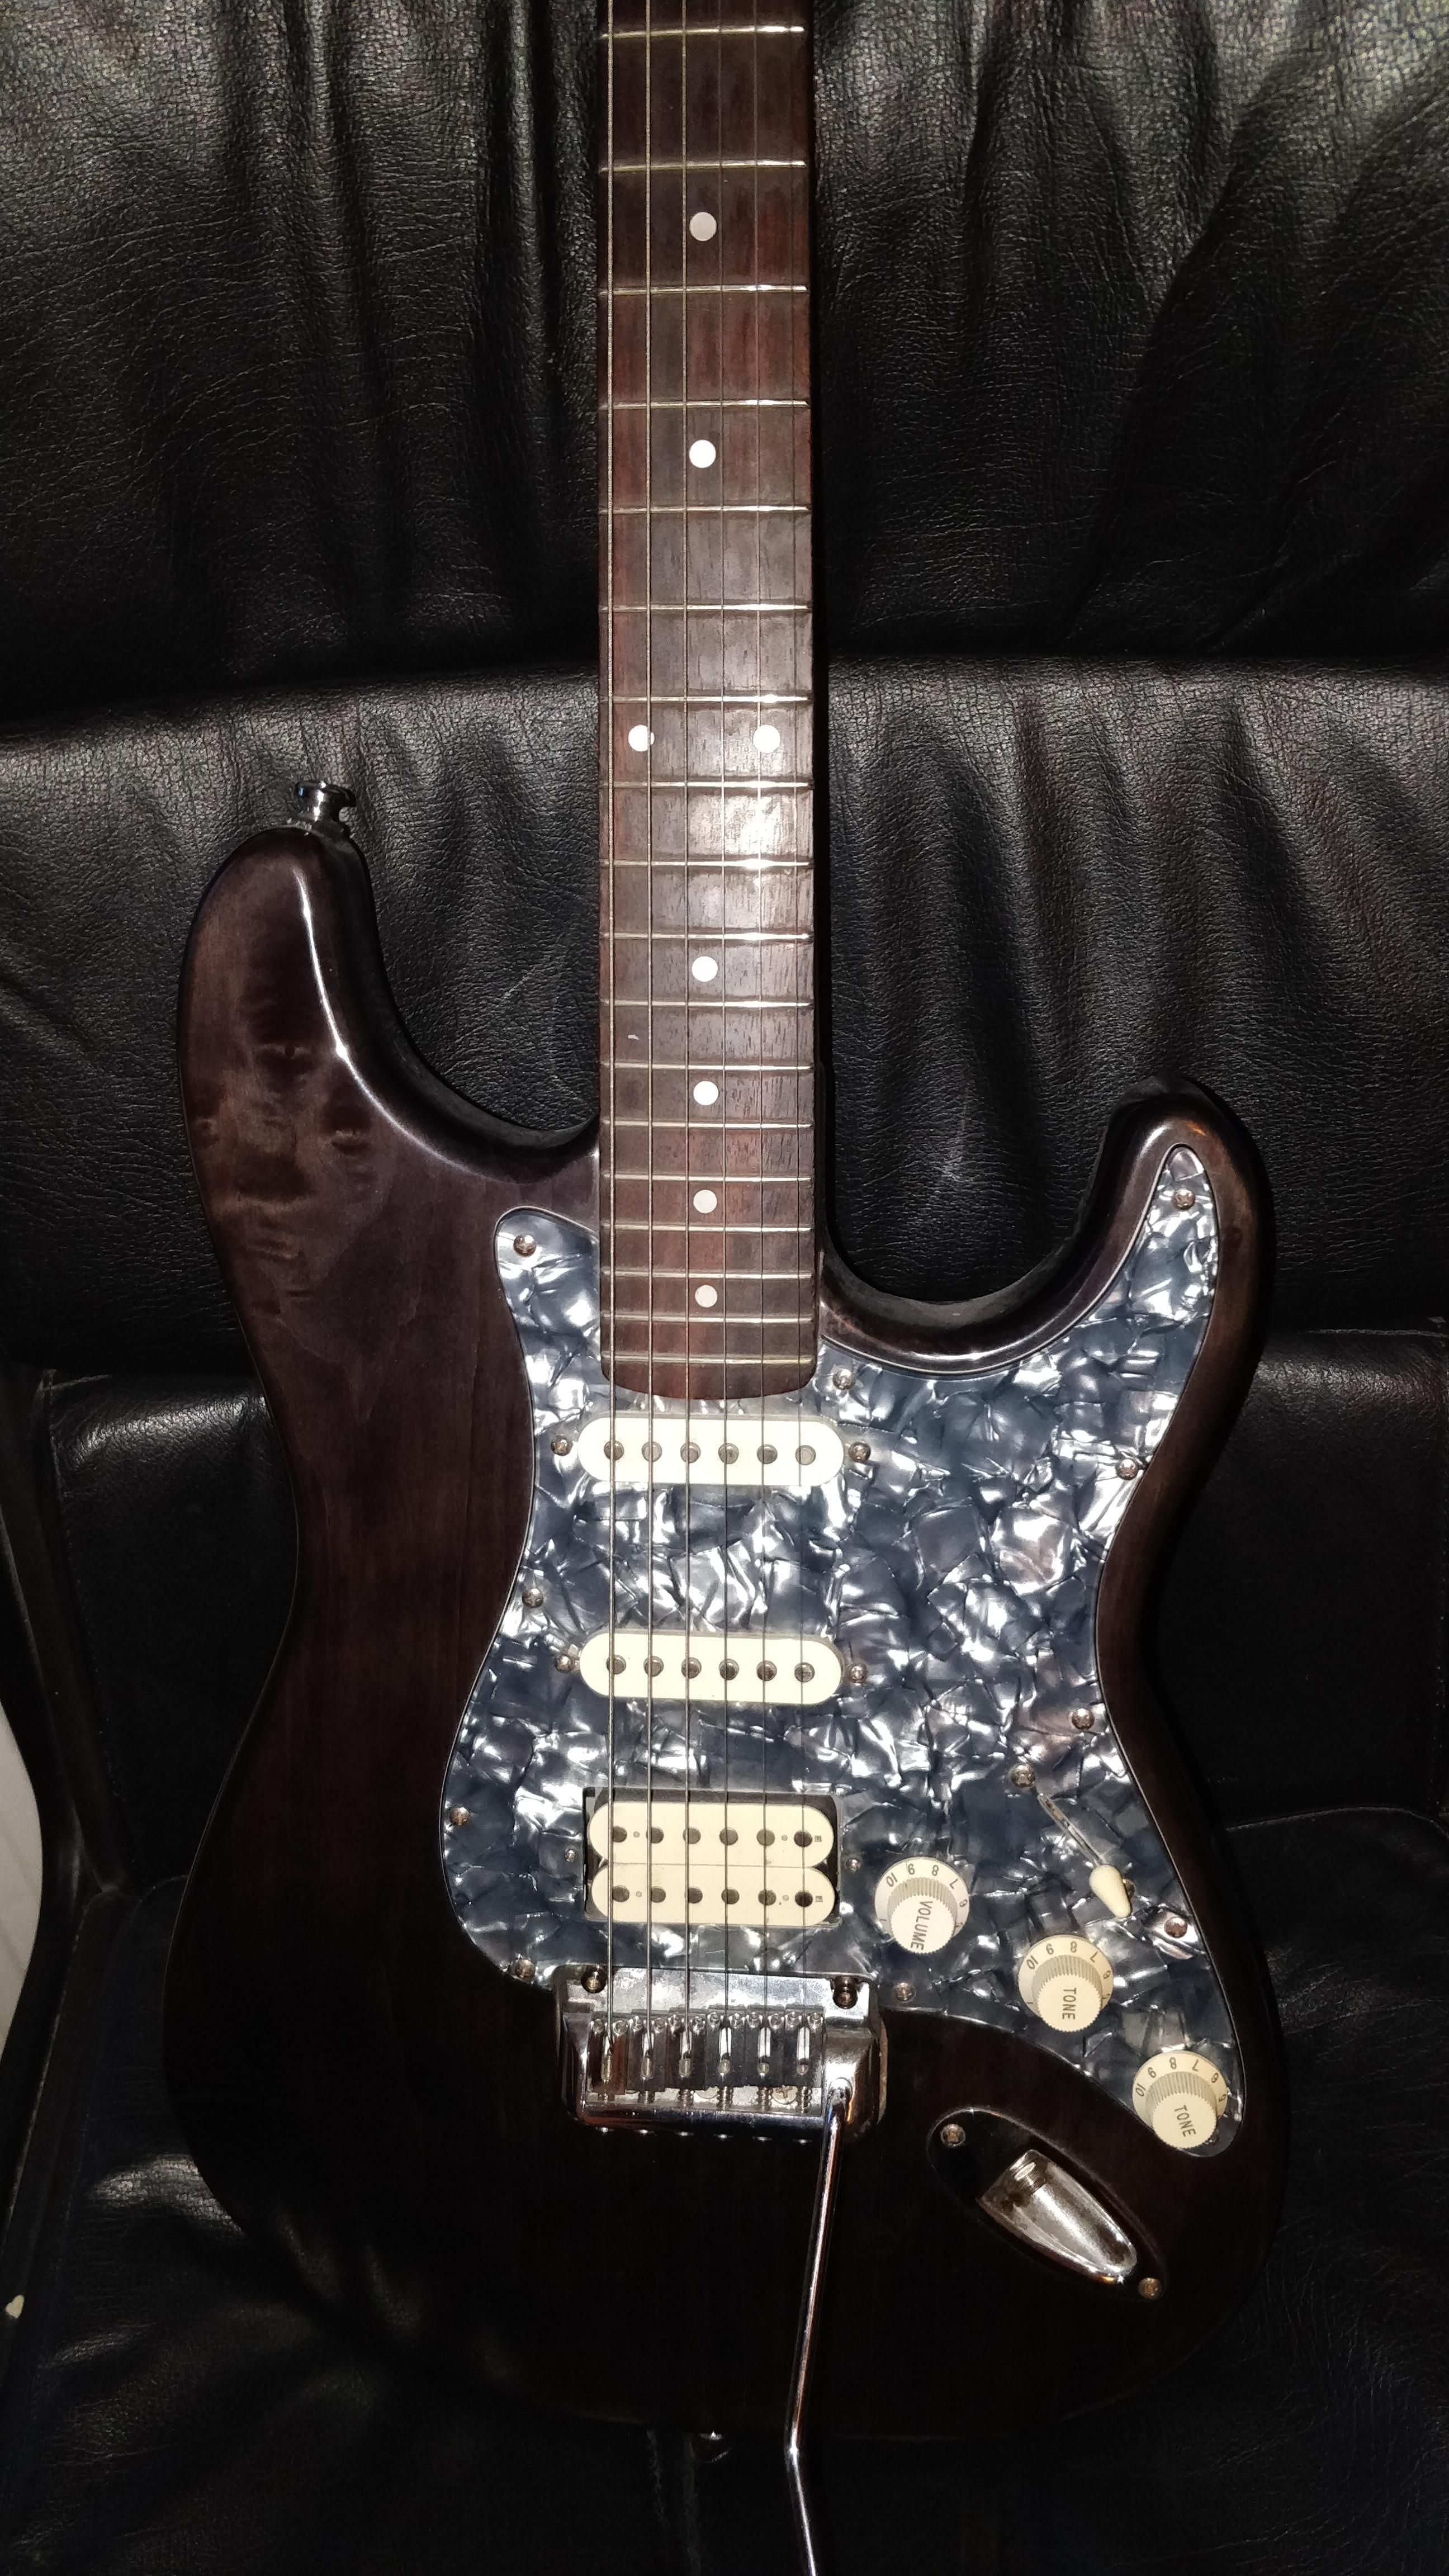 Calling all guitar nerds i need your help to identify